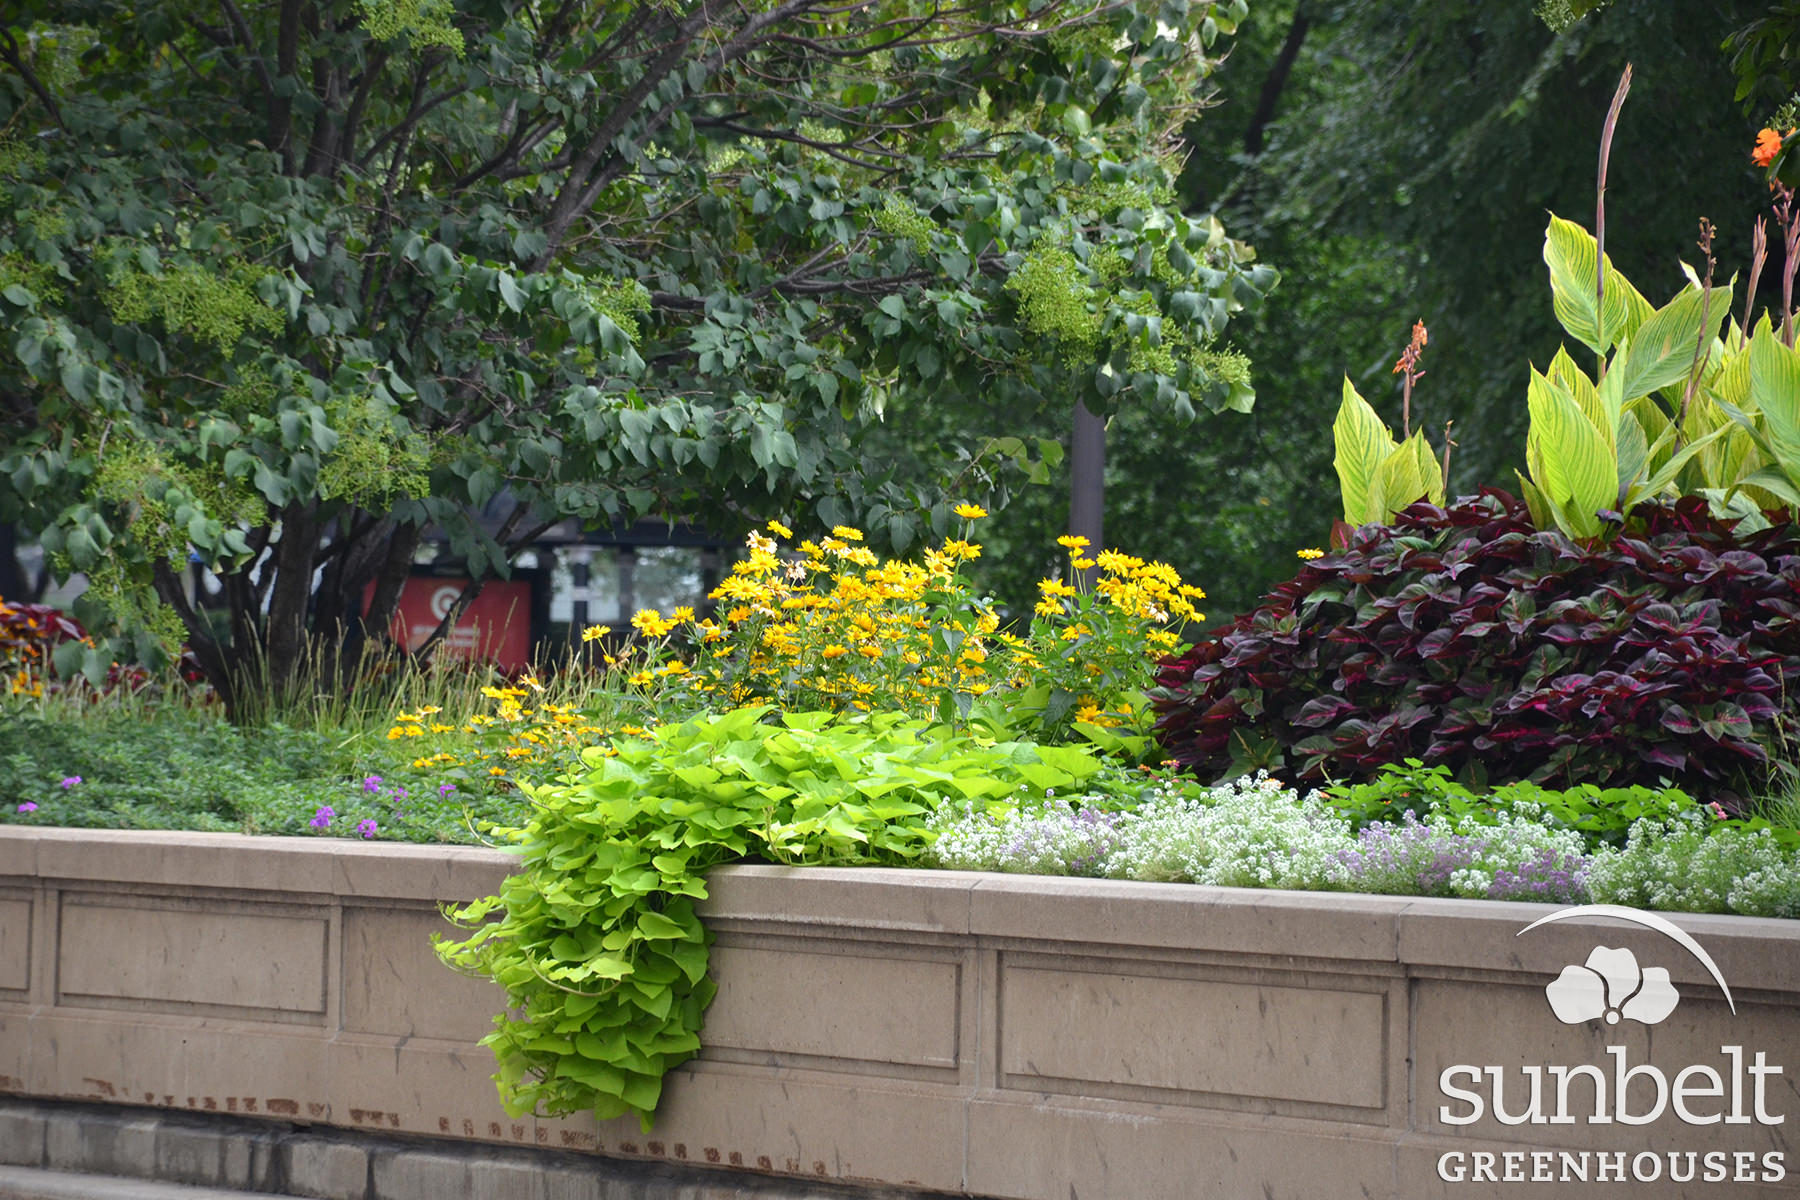 2015-08-19-chicago-landscaping-04.jpg